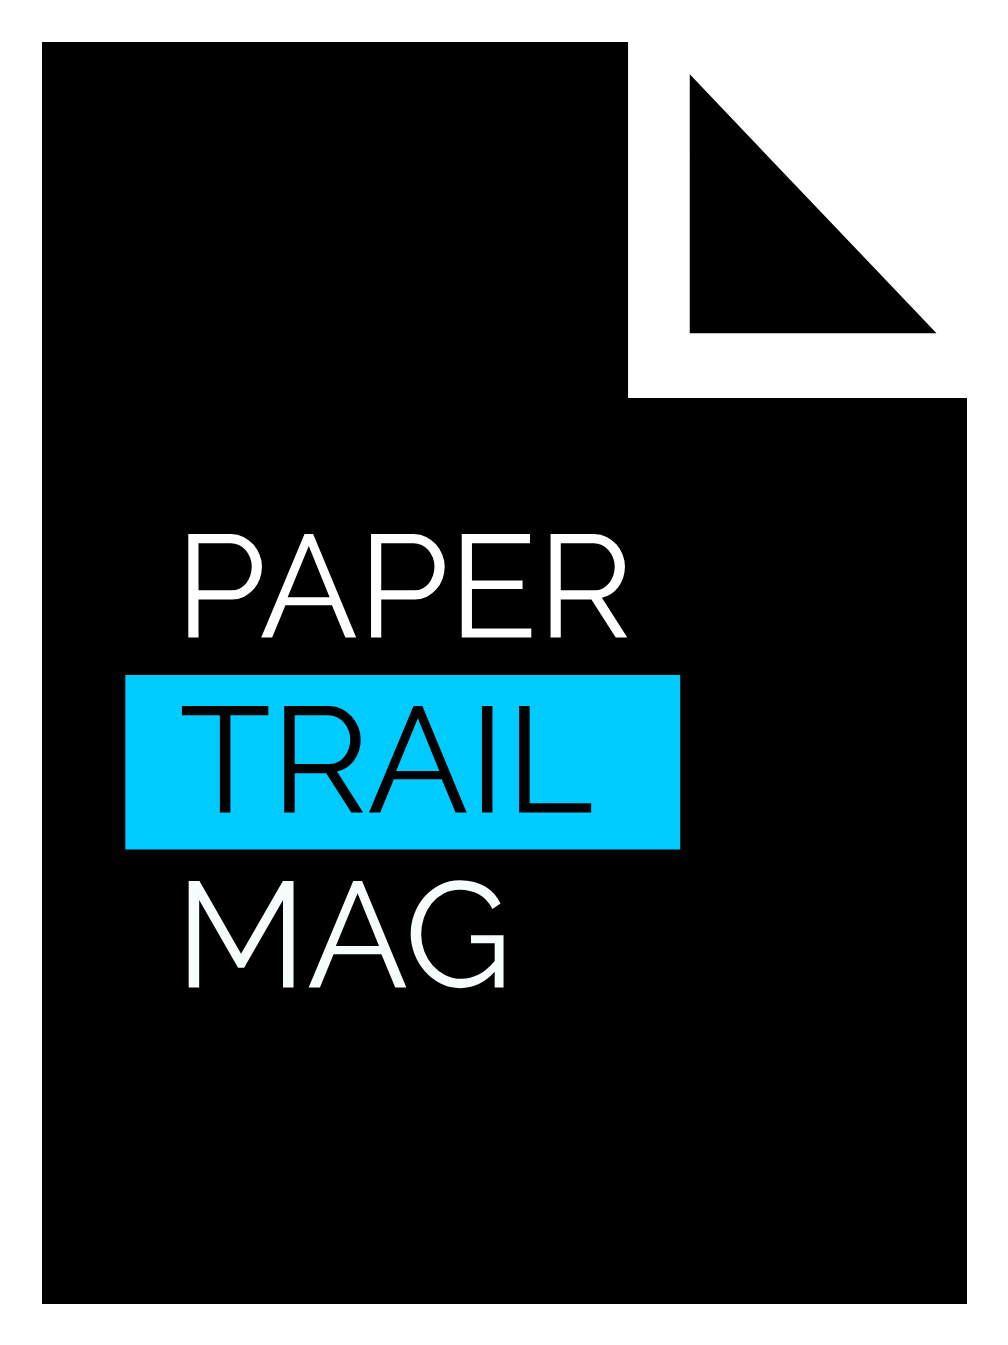 Papertrail Mag